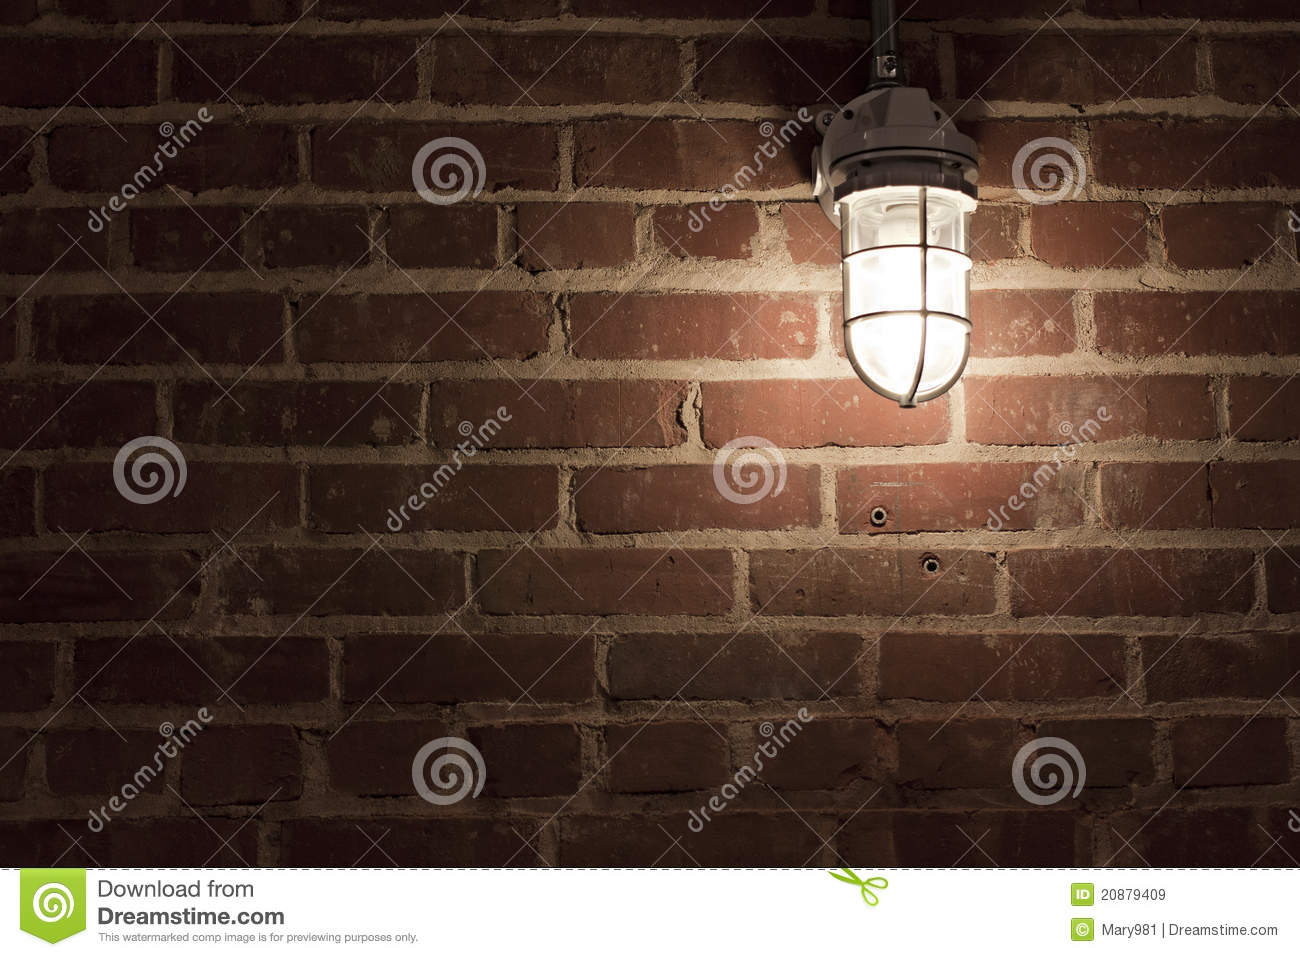 Wall Lights On Brick : Creepy Light On Textrued Brick Wall Stock Image - Image: 20879409